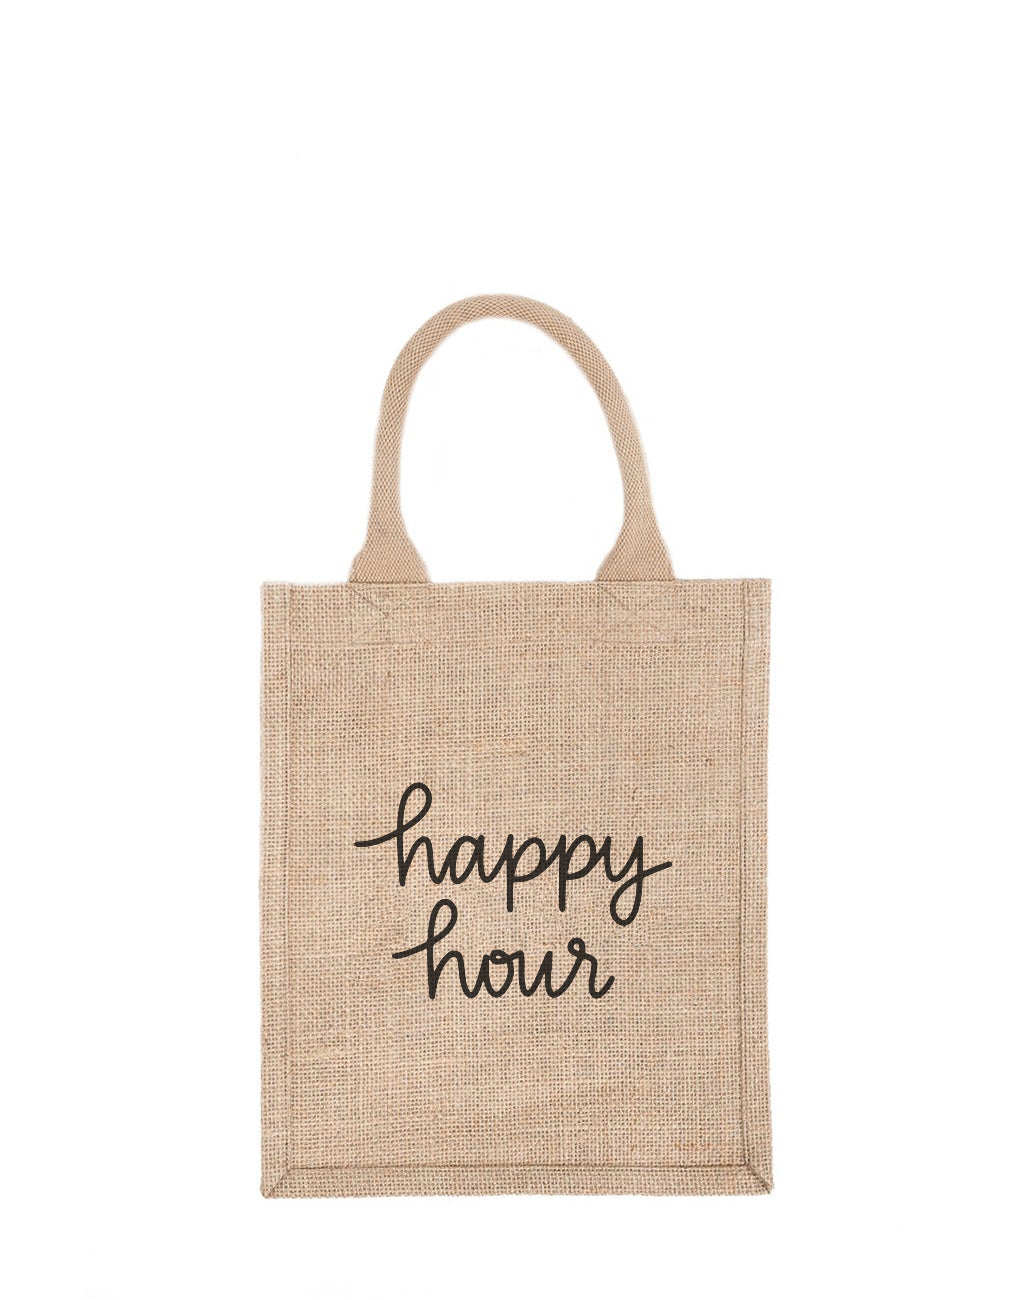 Medium Happy Hour Reusable Gift Tote In Black Font | The Little Market